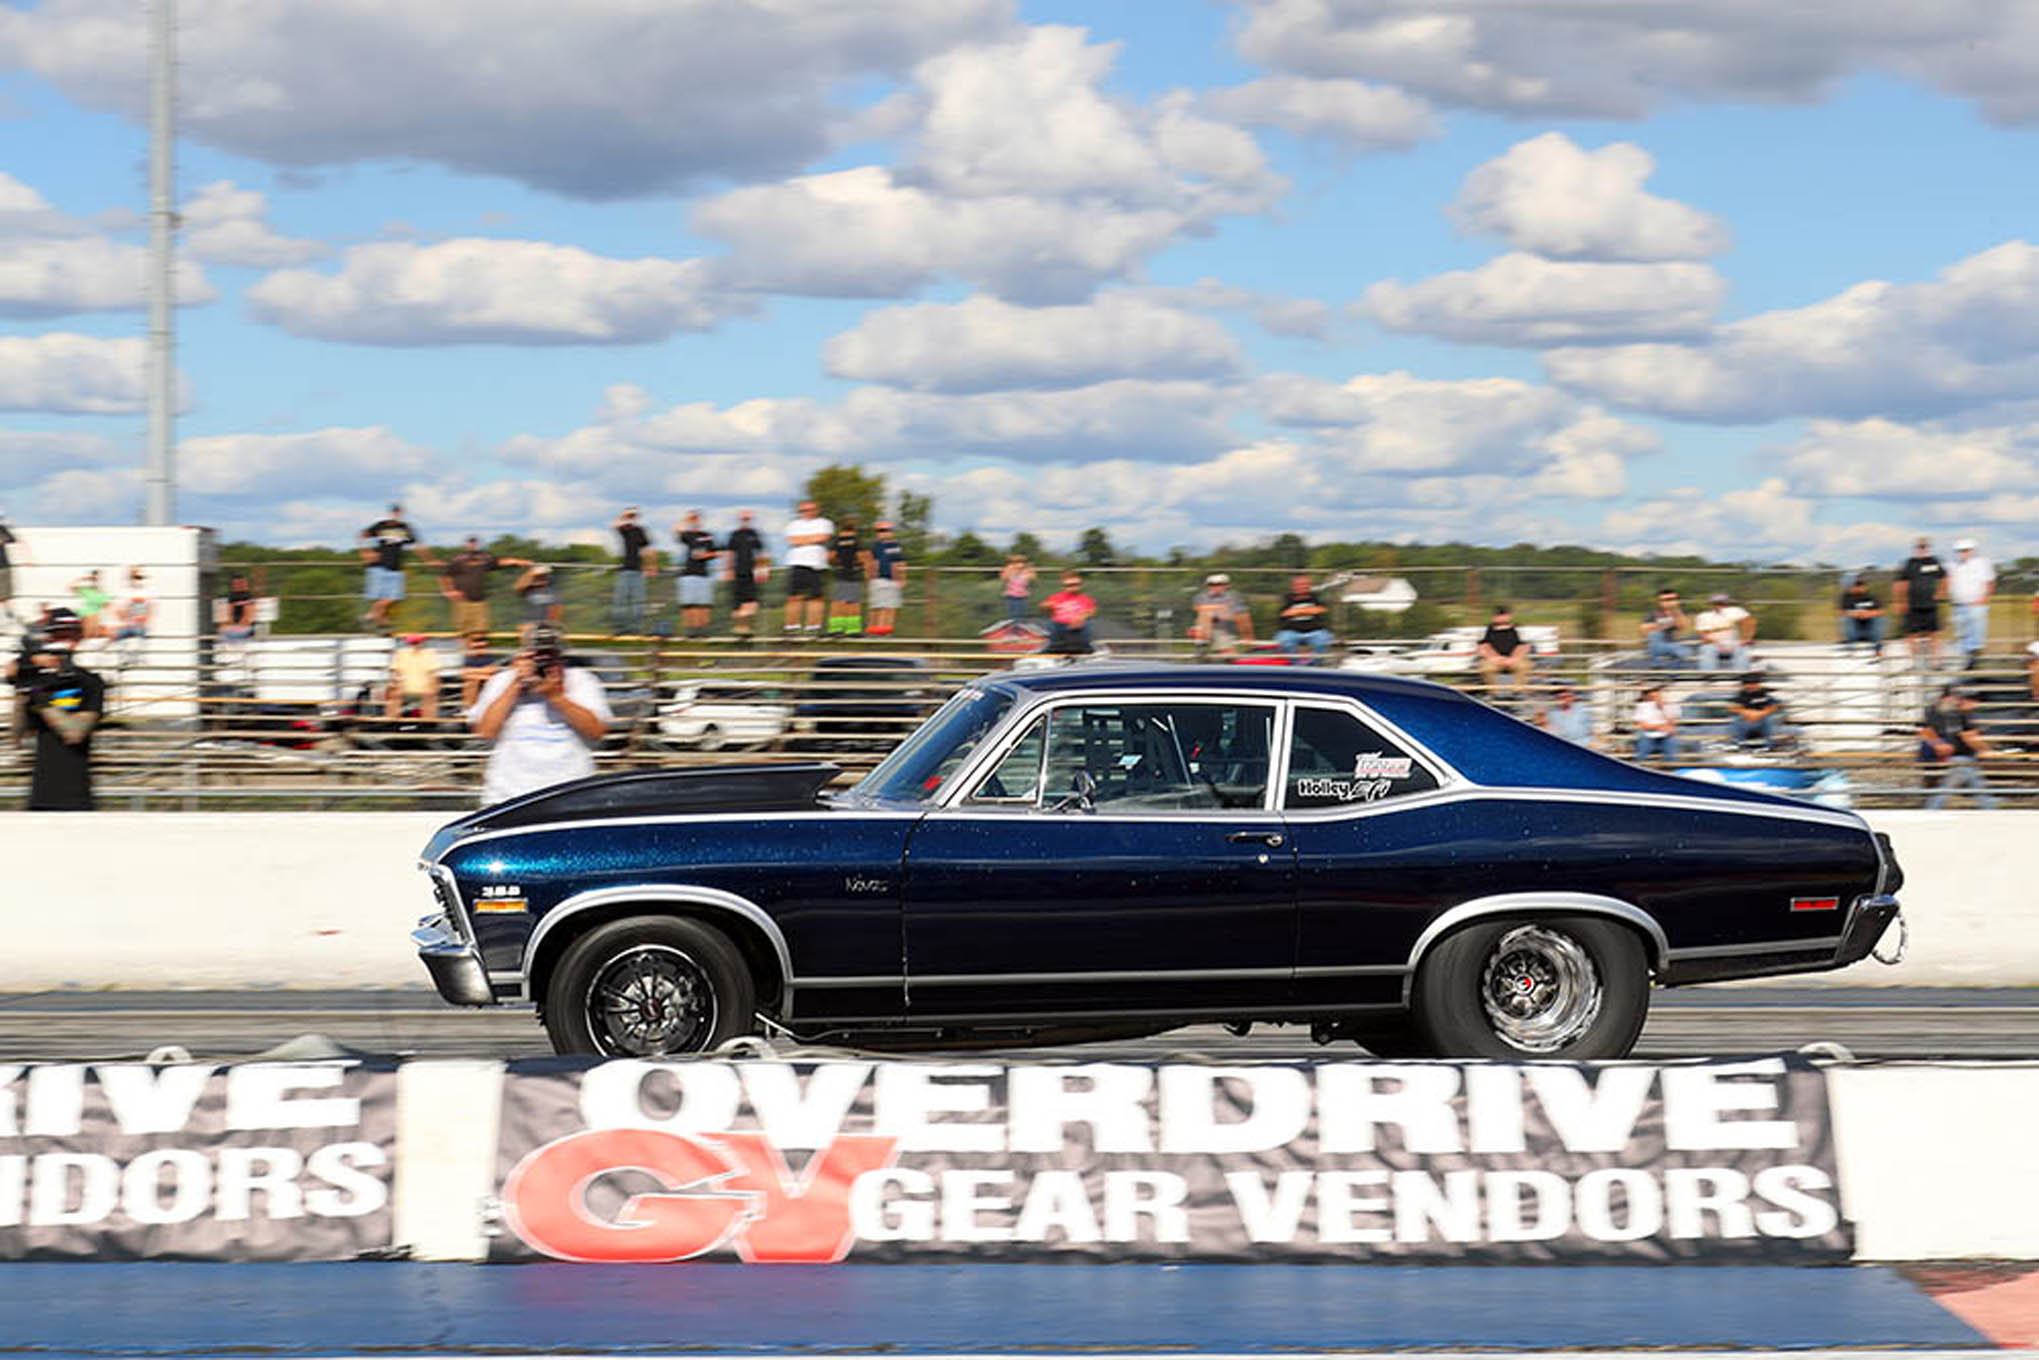 210-wrenching-and-racing-day-1-roadkill-drag-week-2016